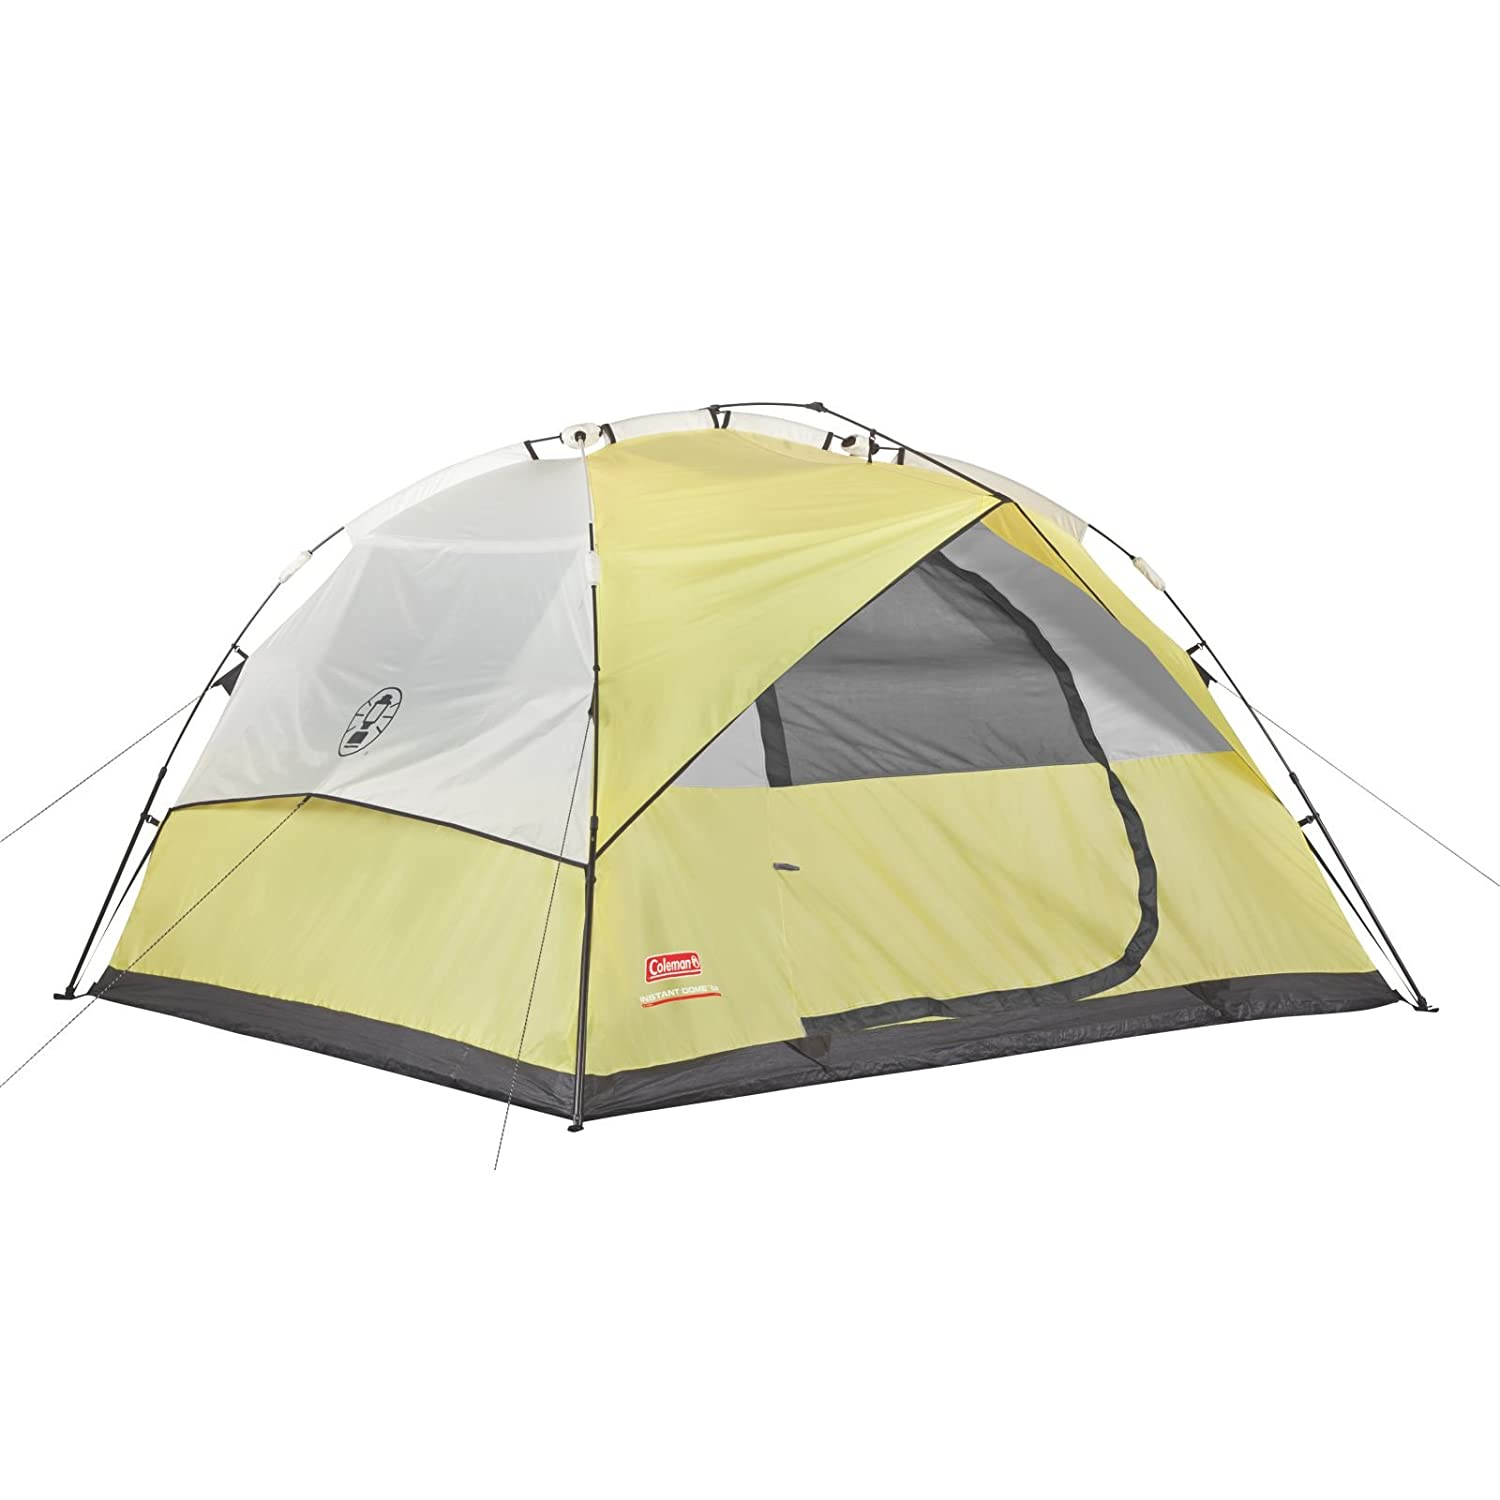 sc 1 st  Amazon.com & Amazon.com : Coleman 3-Person Instant Dome Tent : Sports u0026 Outdoors